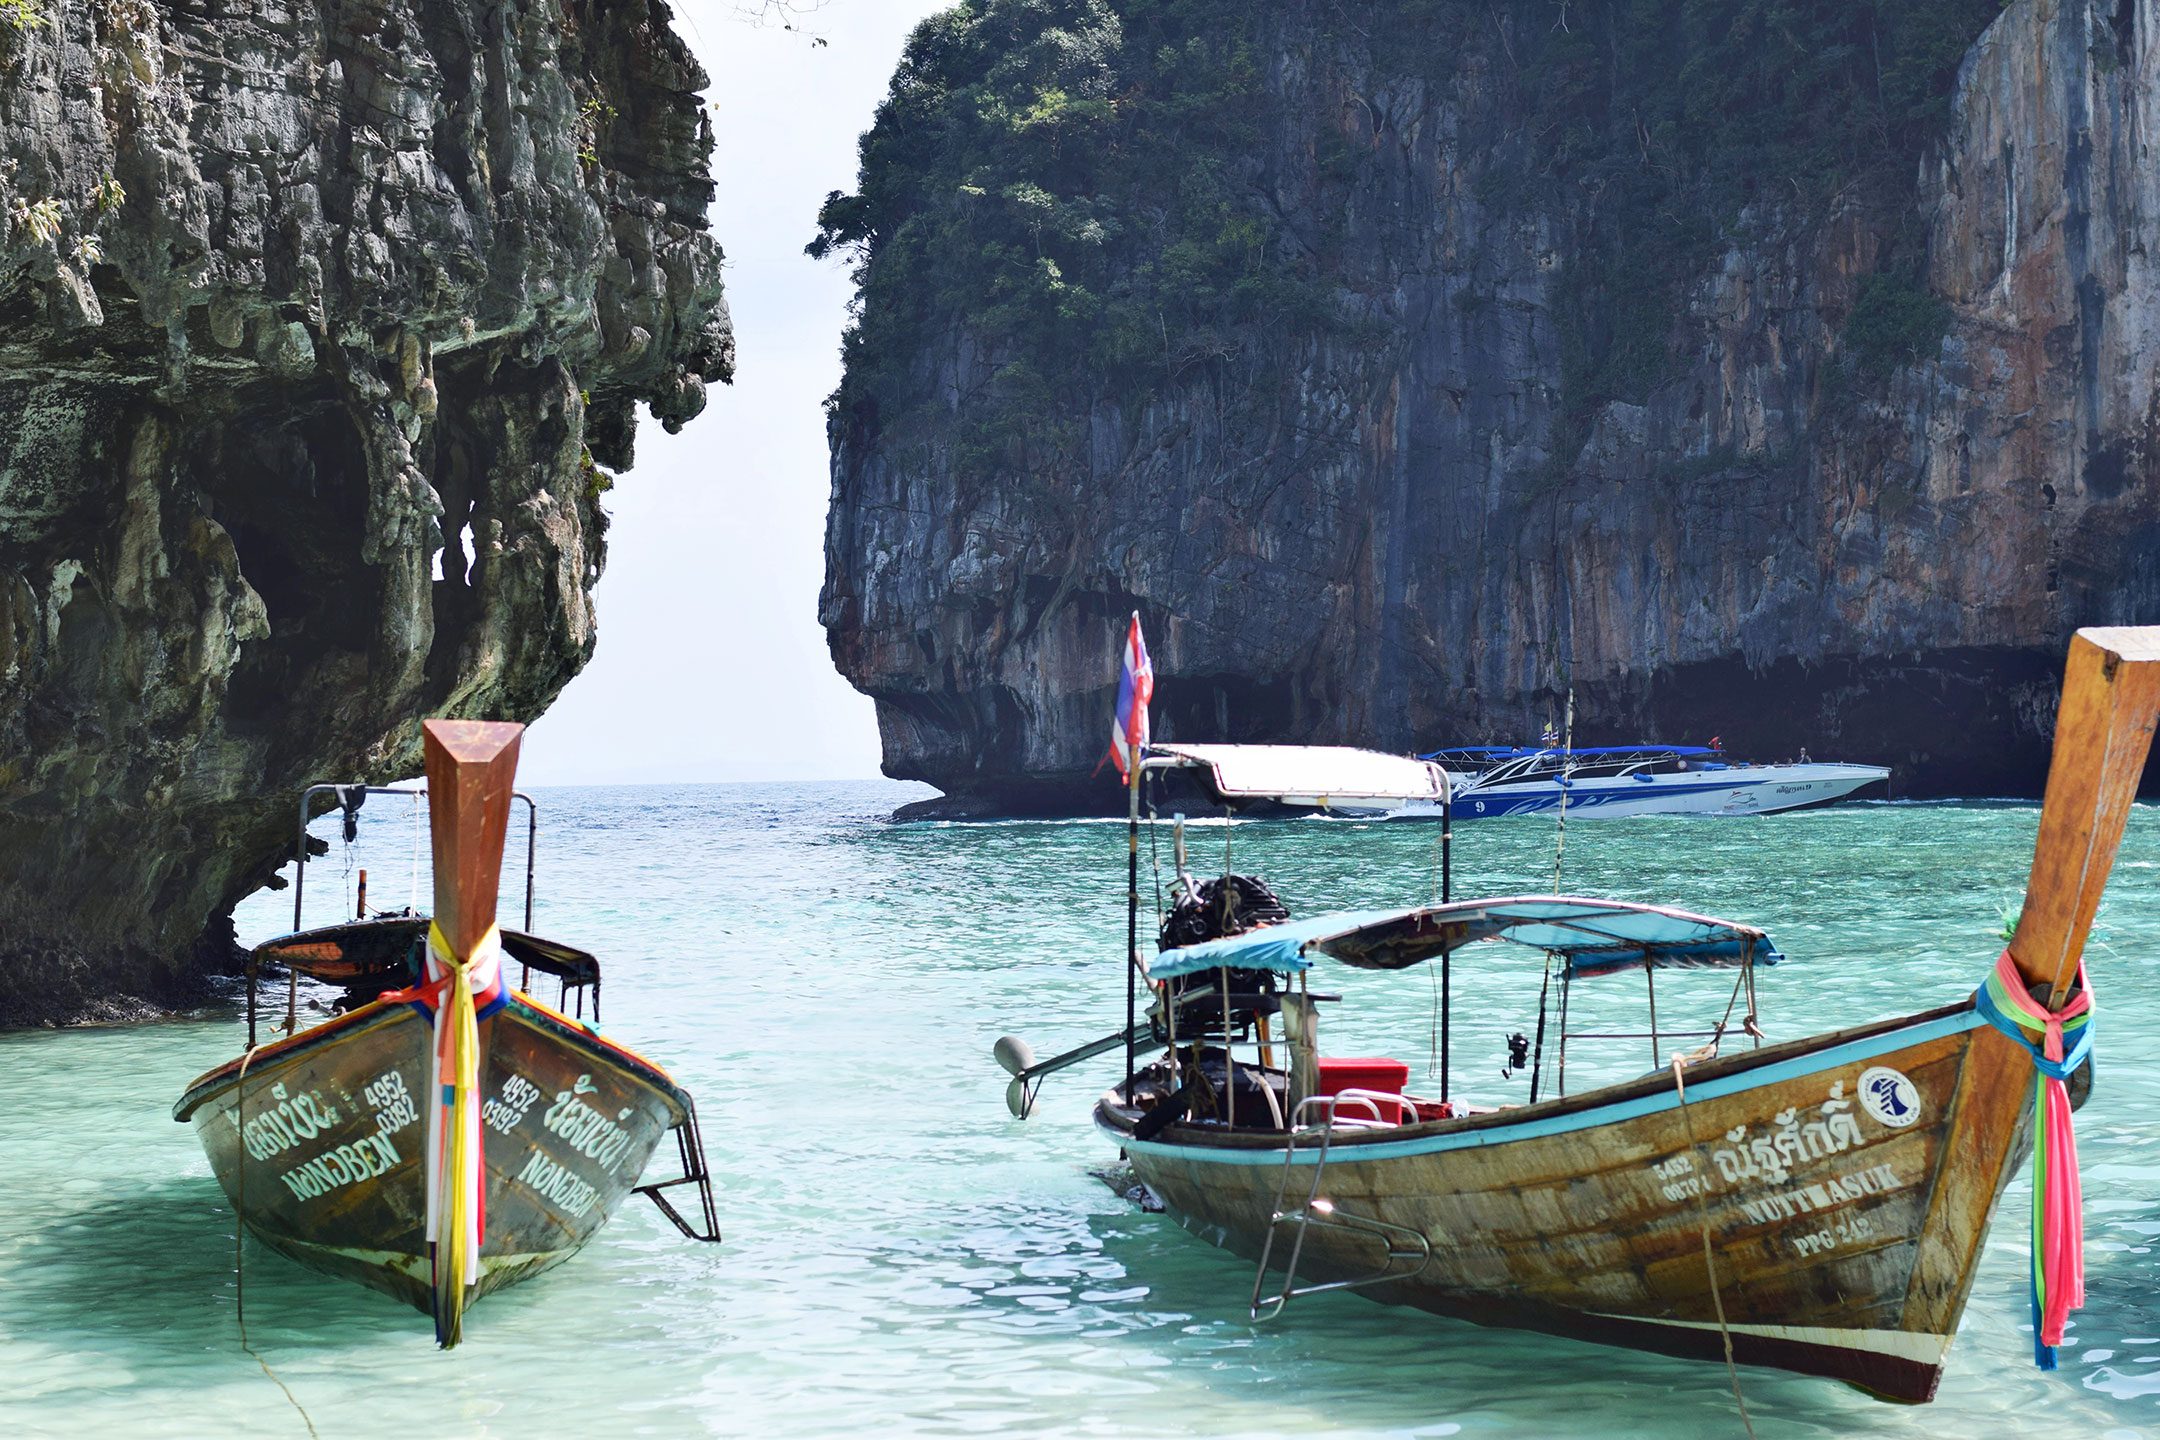 Boats docked in the Phi Phi Islands